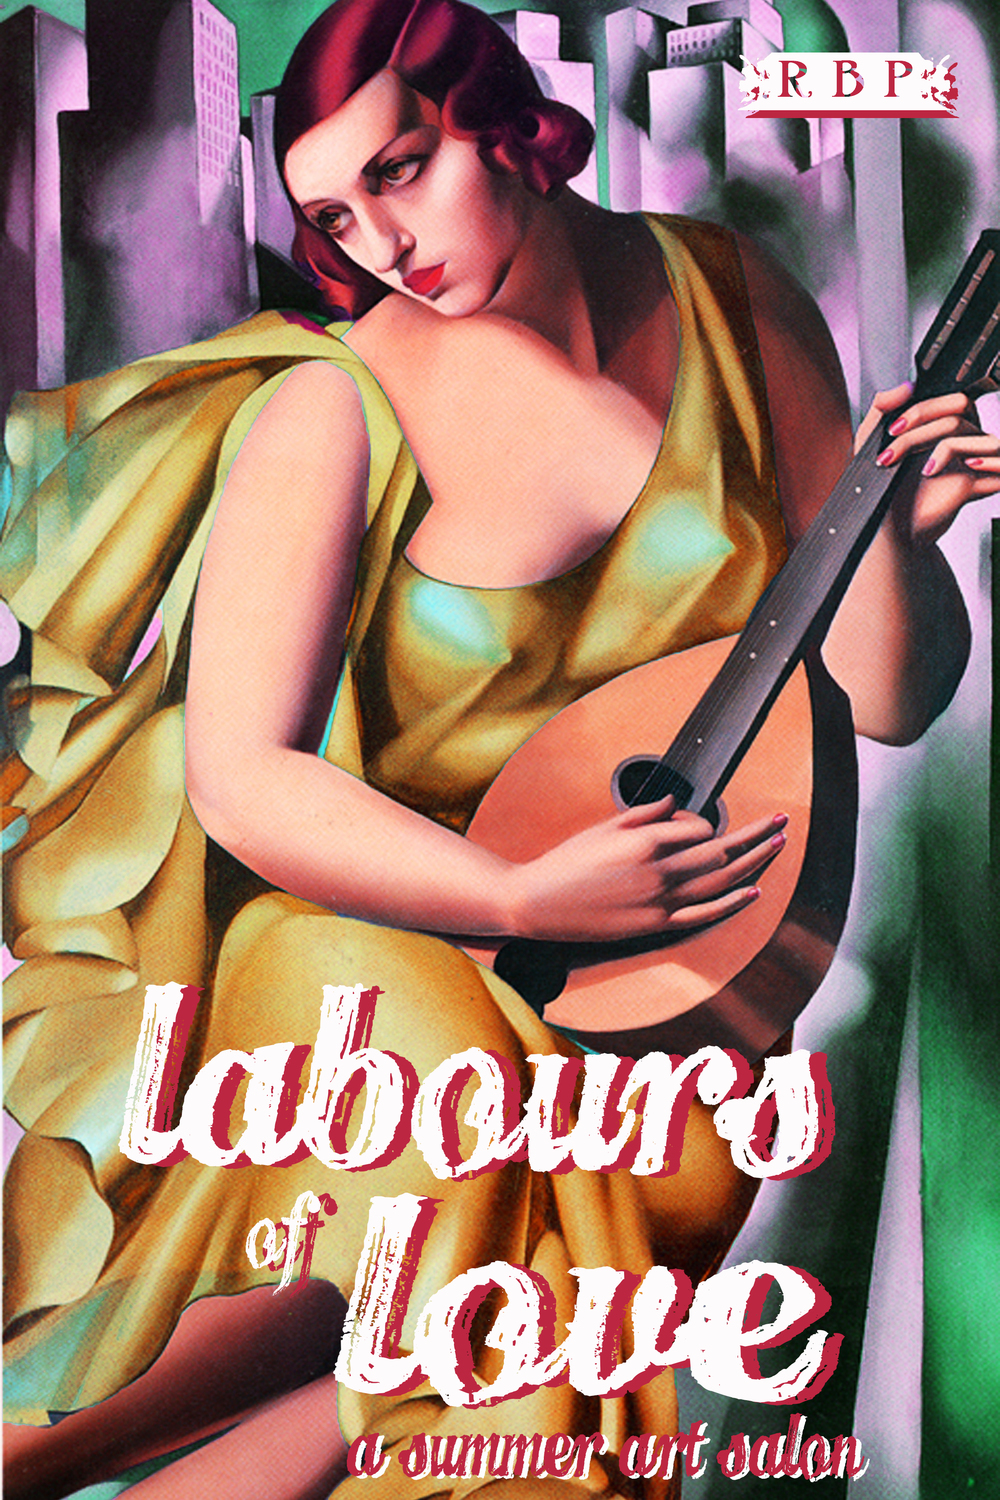 LABOURS_Poster.jpg